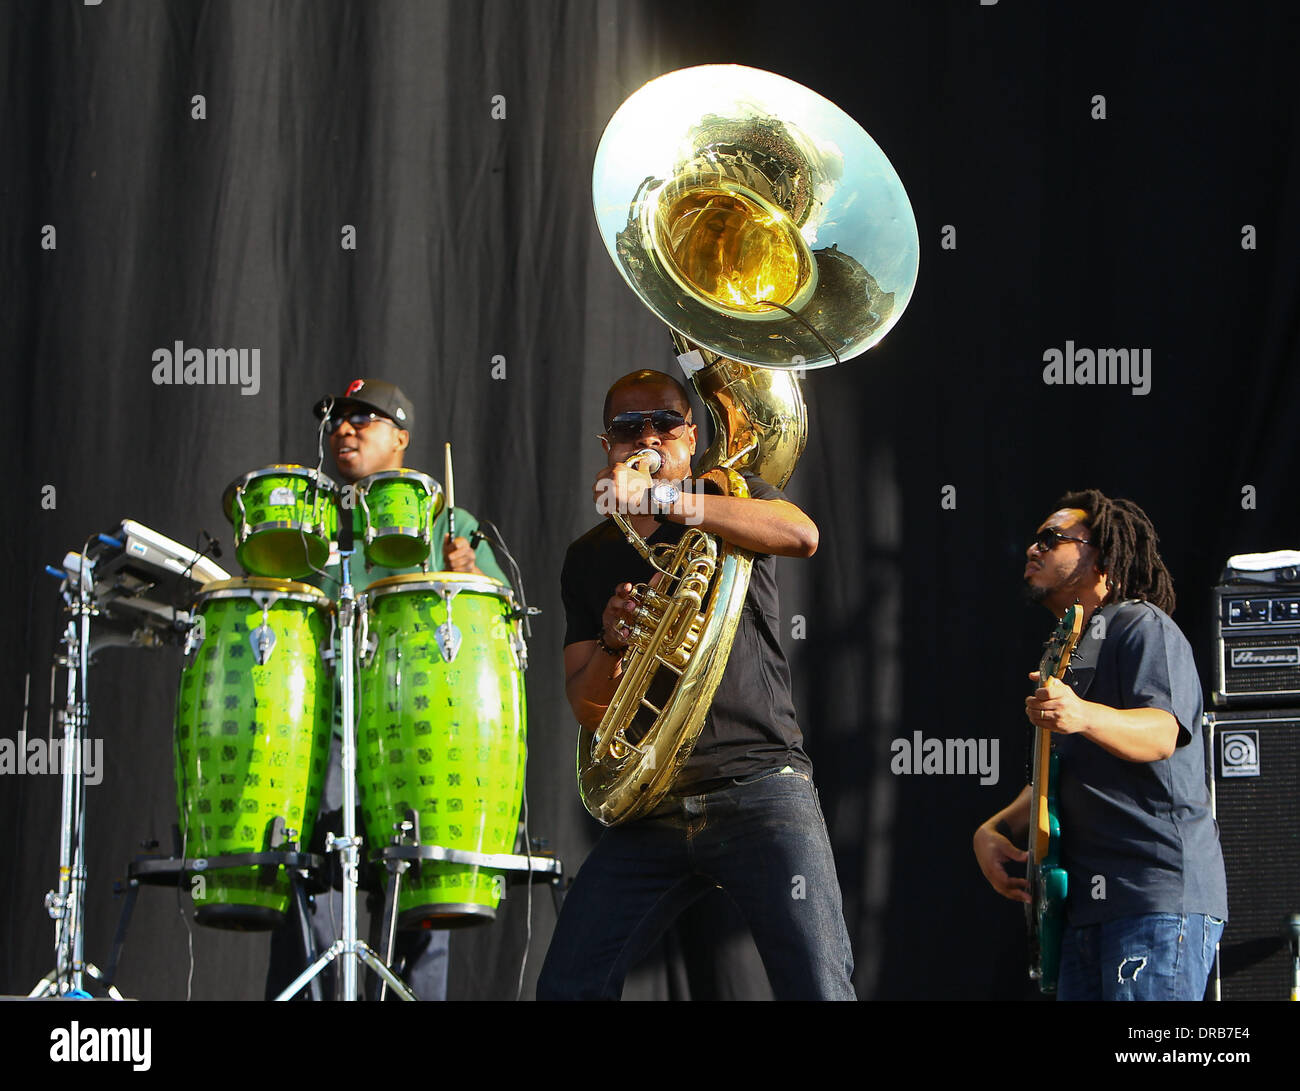 """F. Knuckles and Damon """"Tuba Gooding Jr."""" Bryson of The Roots Barclaycard Wireless Festival 2012 - Day 1 London, Stock Photo"""